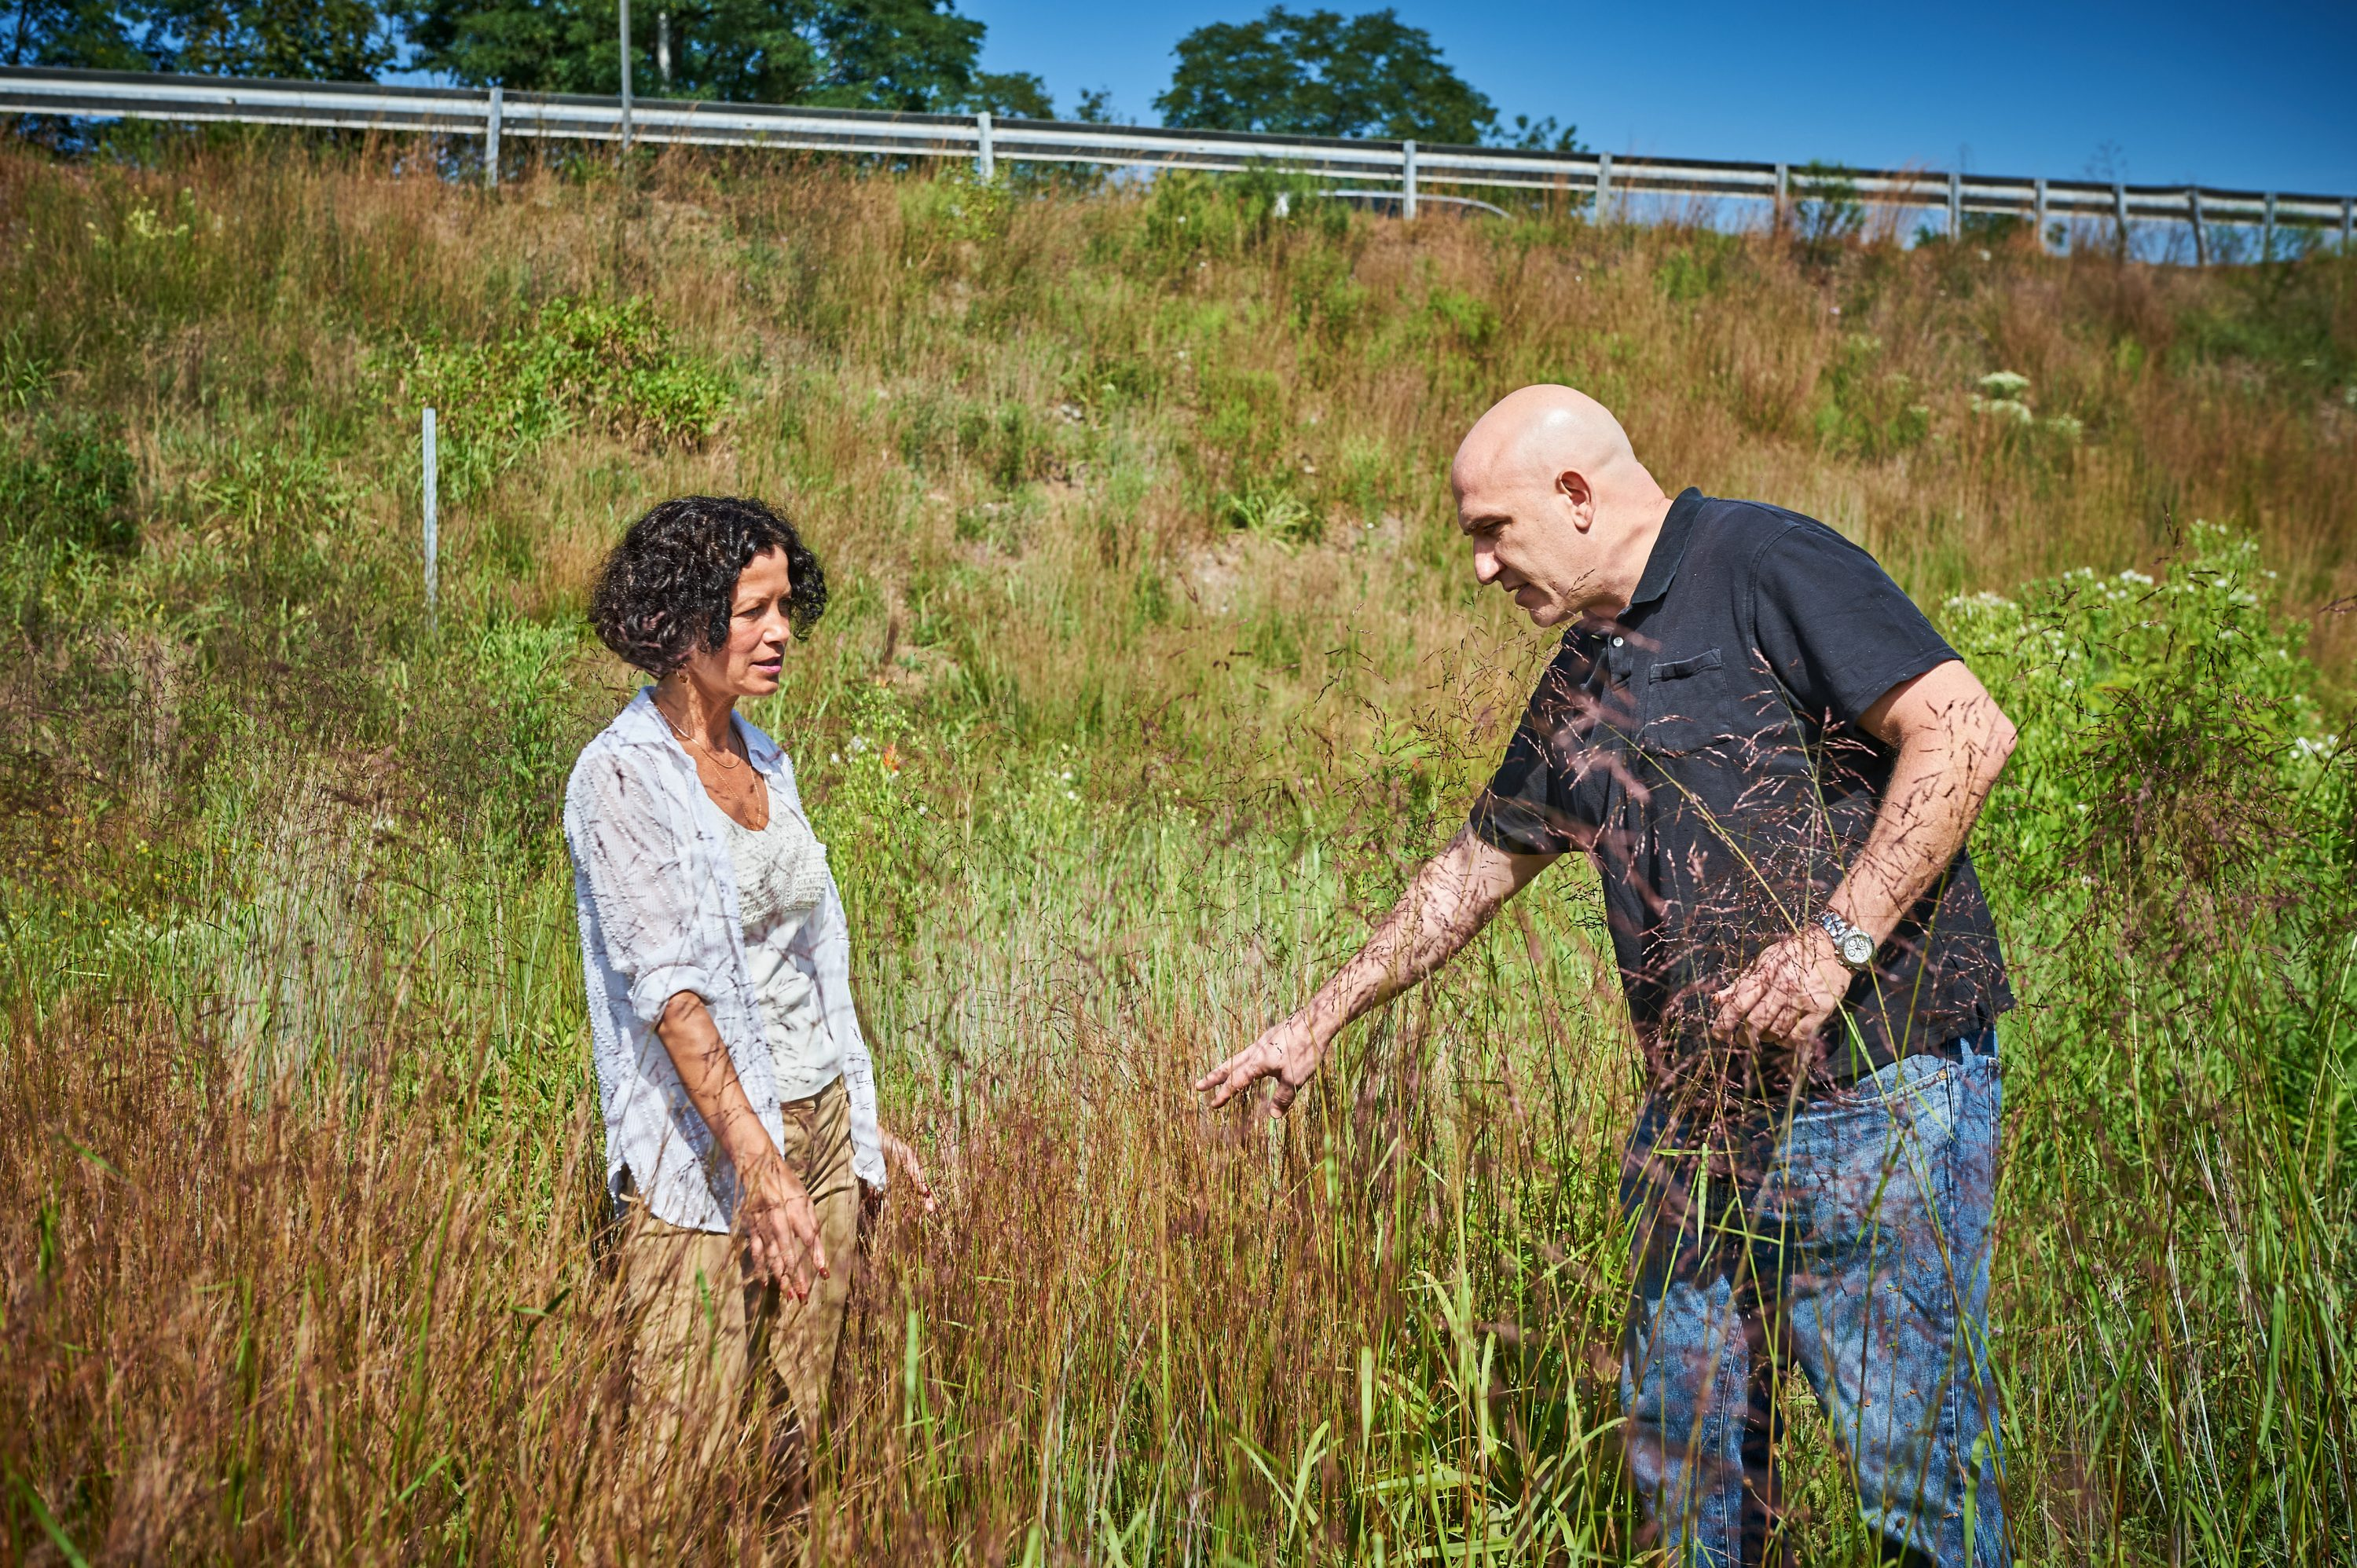 Yulia Kuzovkina-Eischen, associate professor of plant science & landscape architecture, and John Campanelli, a graduate student, inspect the growth of native species planted on DOT property along U.S. RT 6 in North Windham on Aug. 29, 2016. (Peter Morenus/UConn Photo)